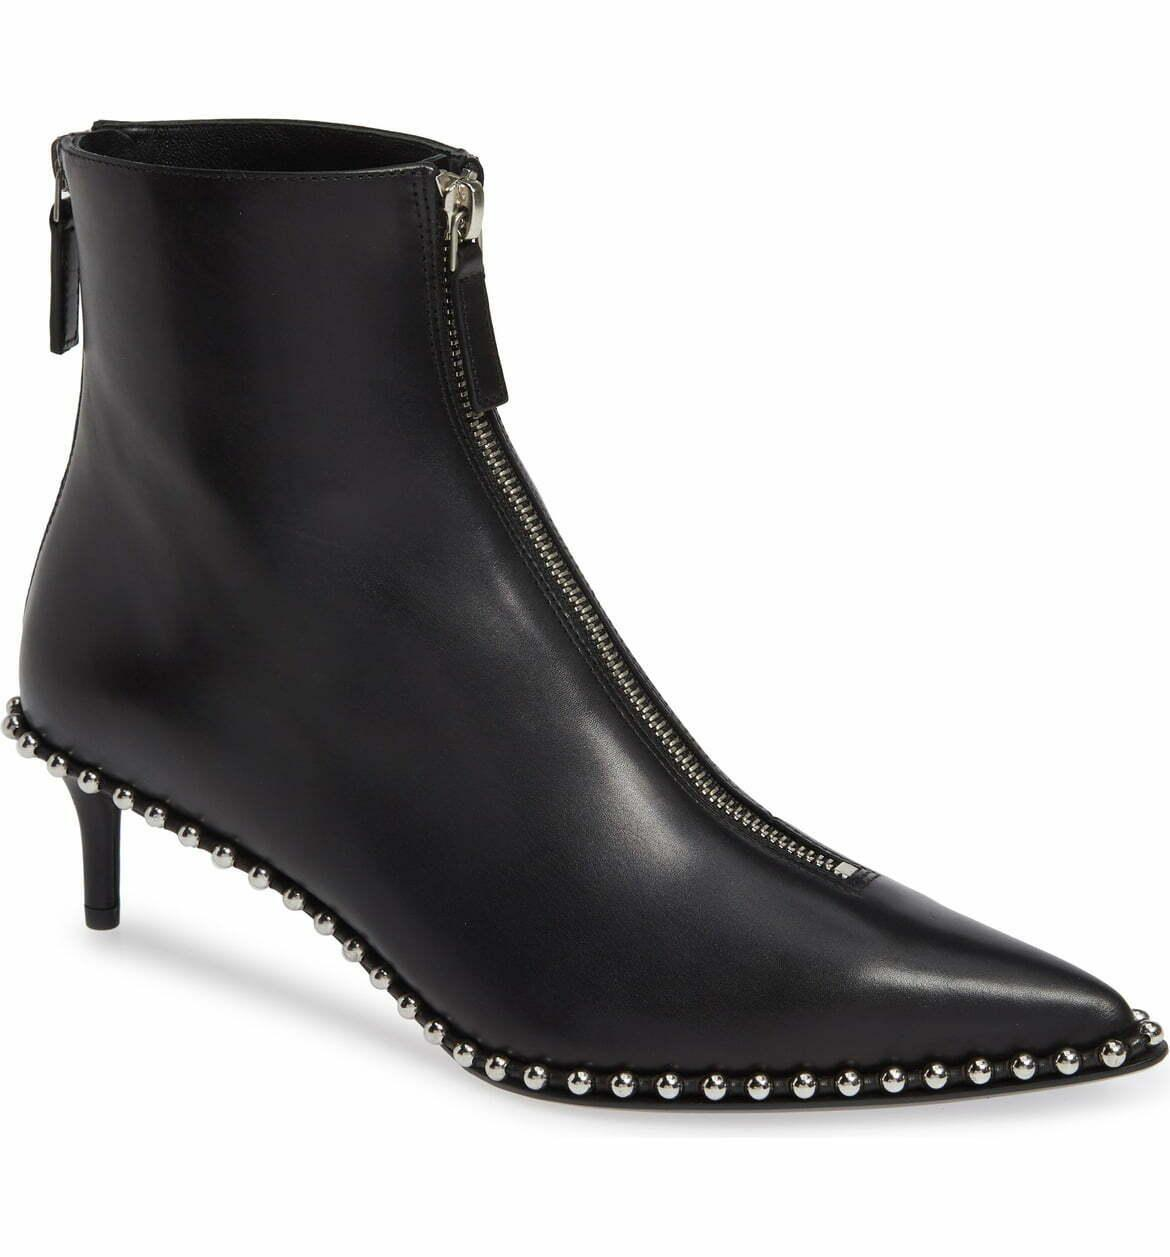 Alexander Wang ERI Studded Pointy Toe Boots Ankle Booties 38.5 Kitten Heel